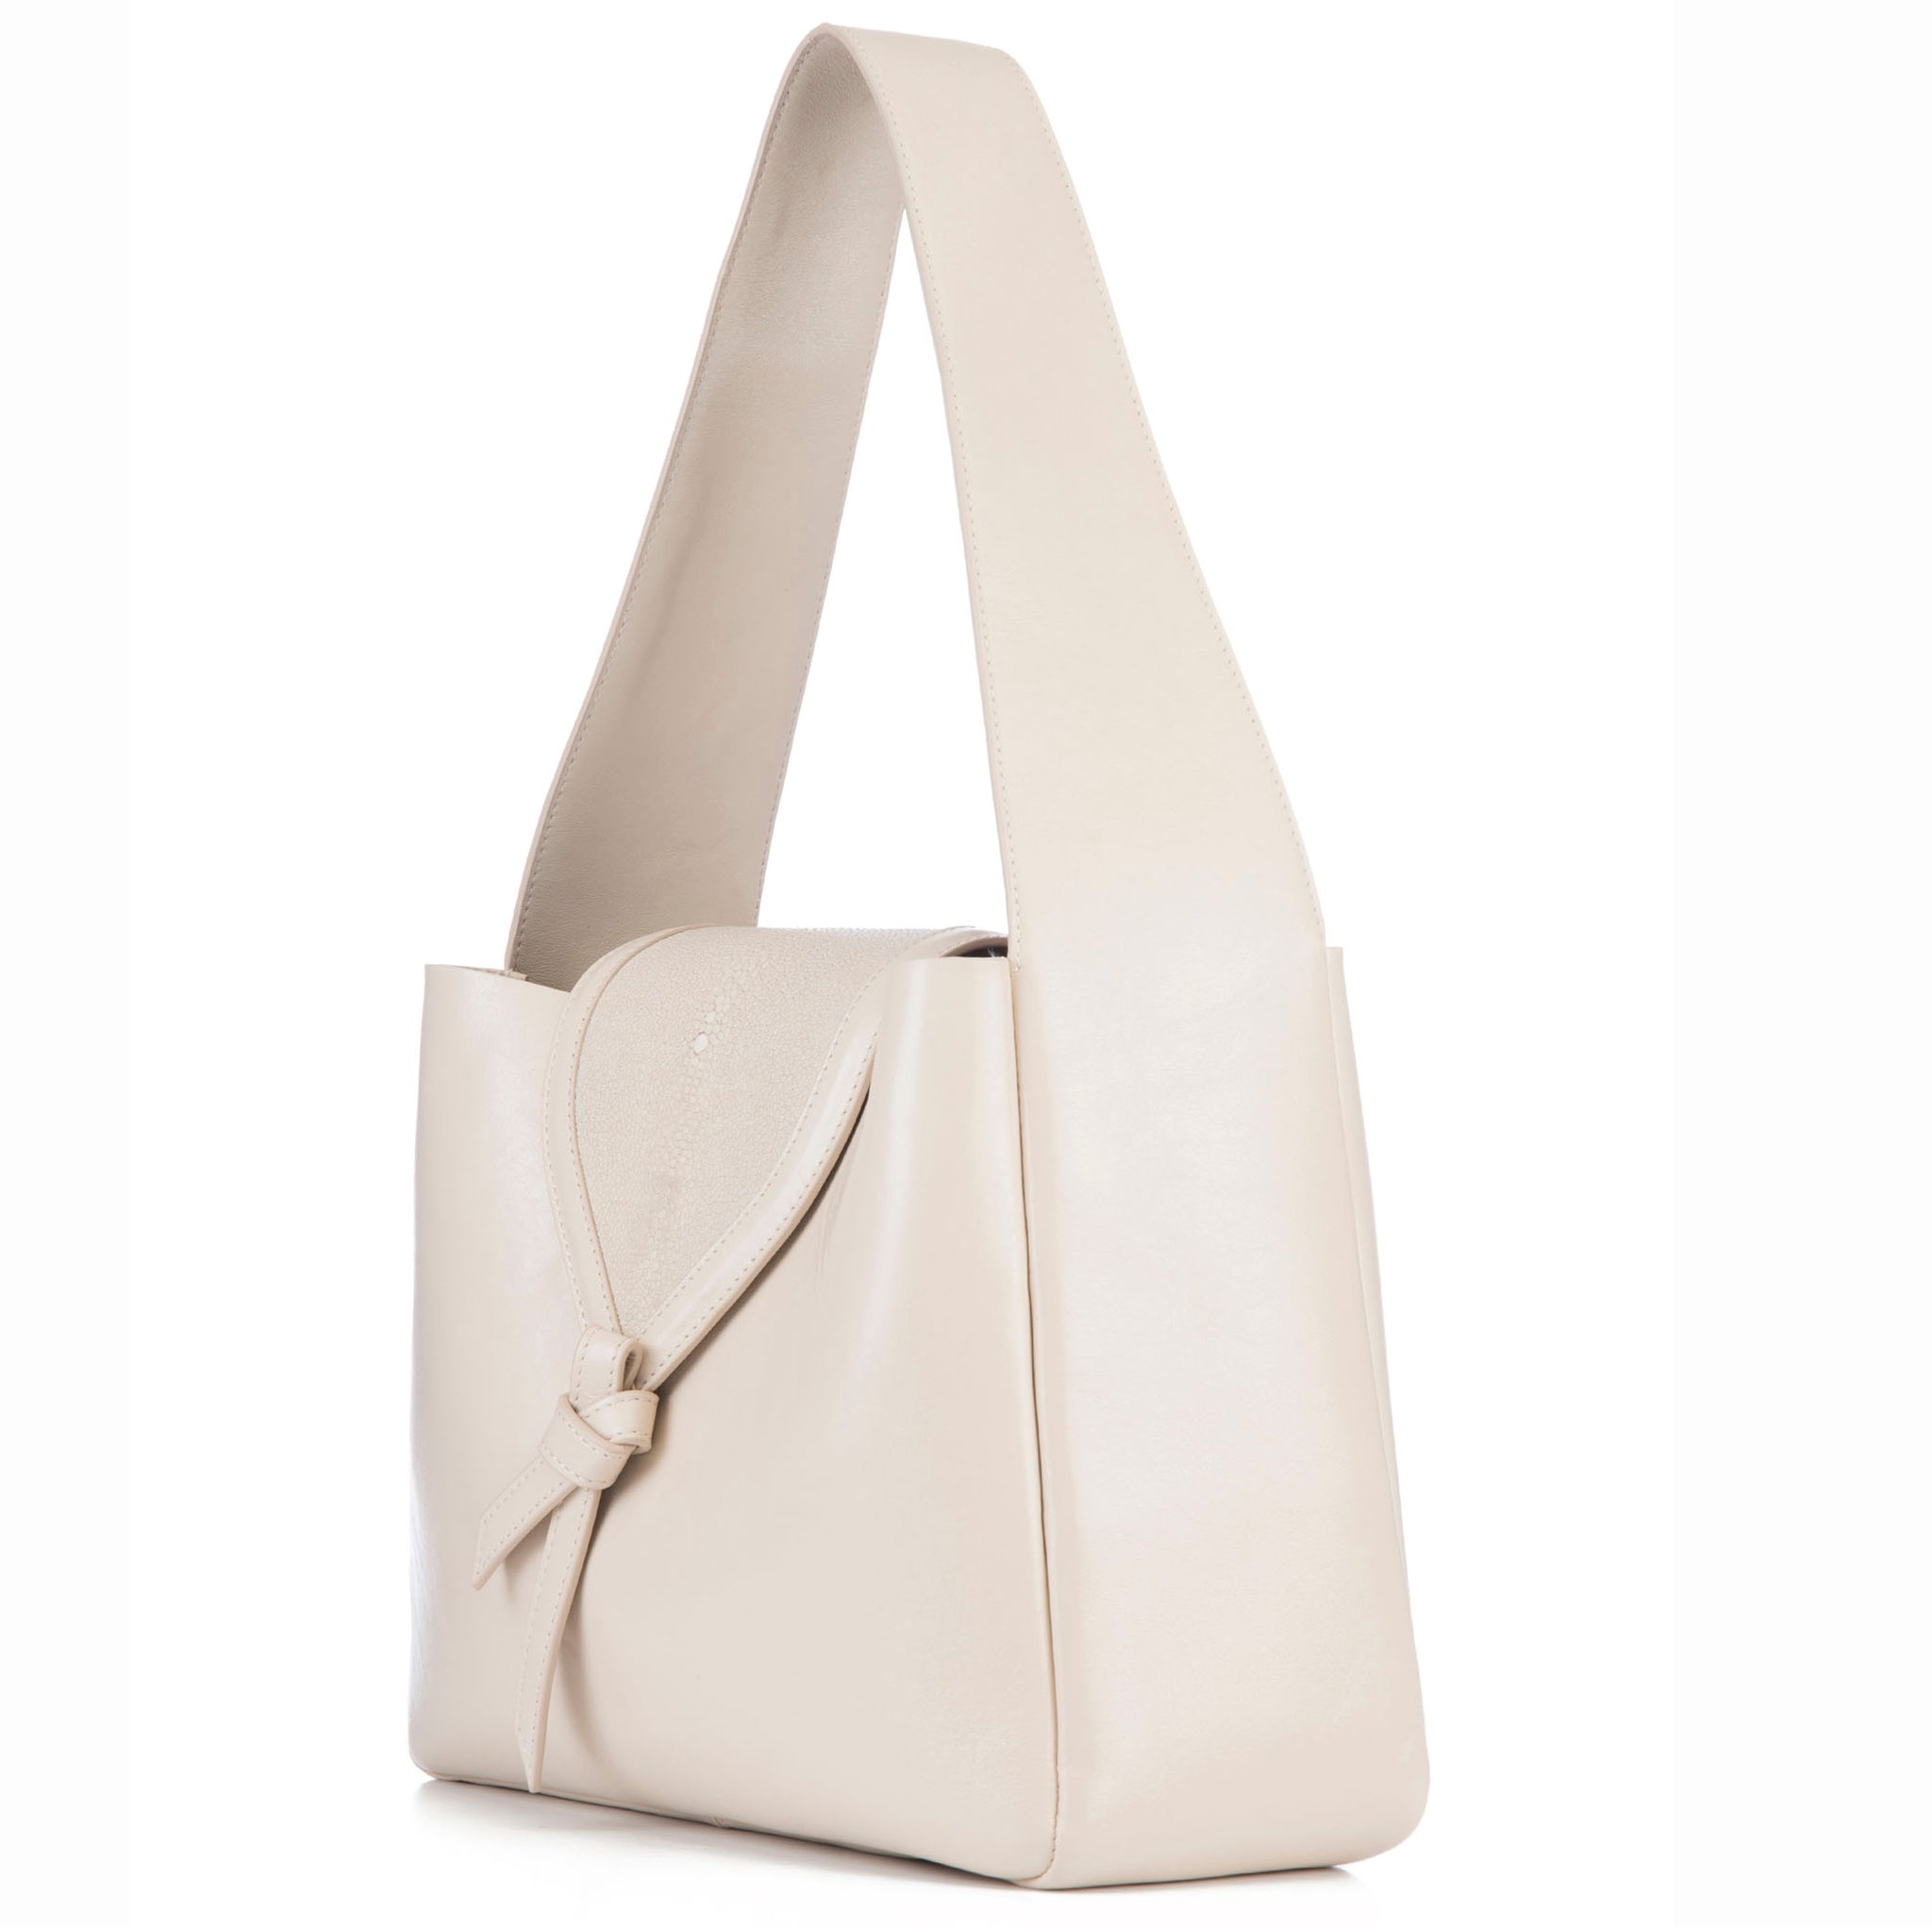 Eve Ivory Leather Shoulder Tote With Wheat Shagreen Flap And Leather Knot Detail Side View - Vivo Direct